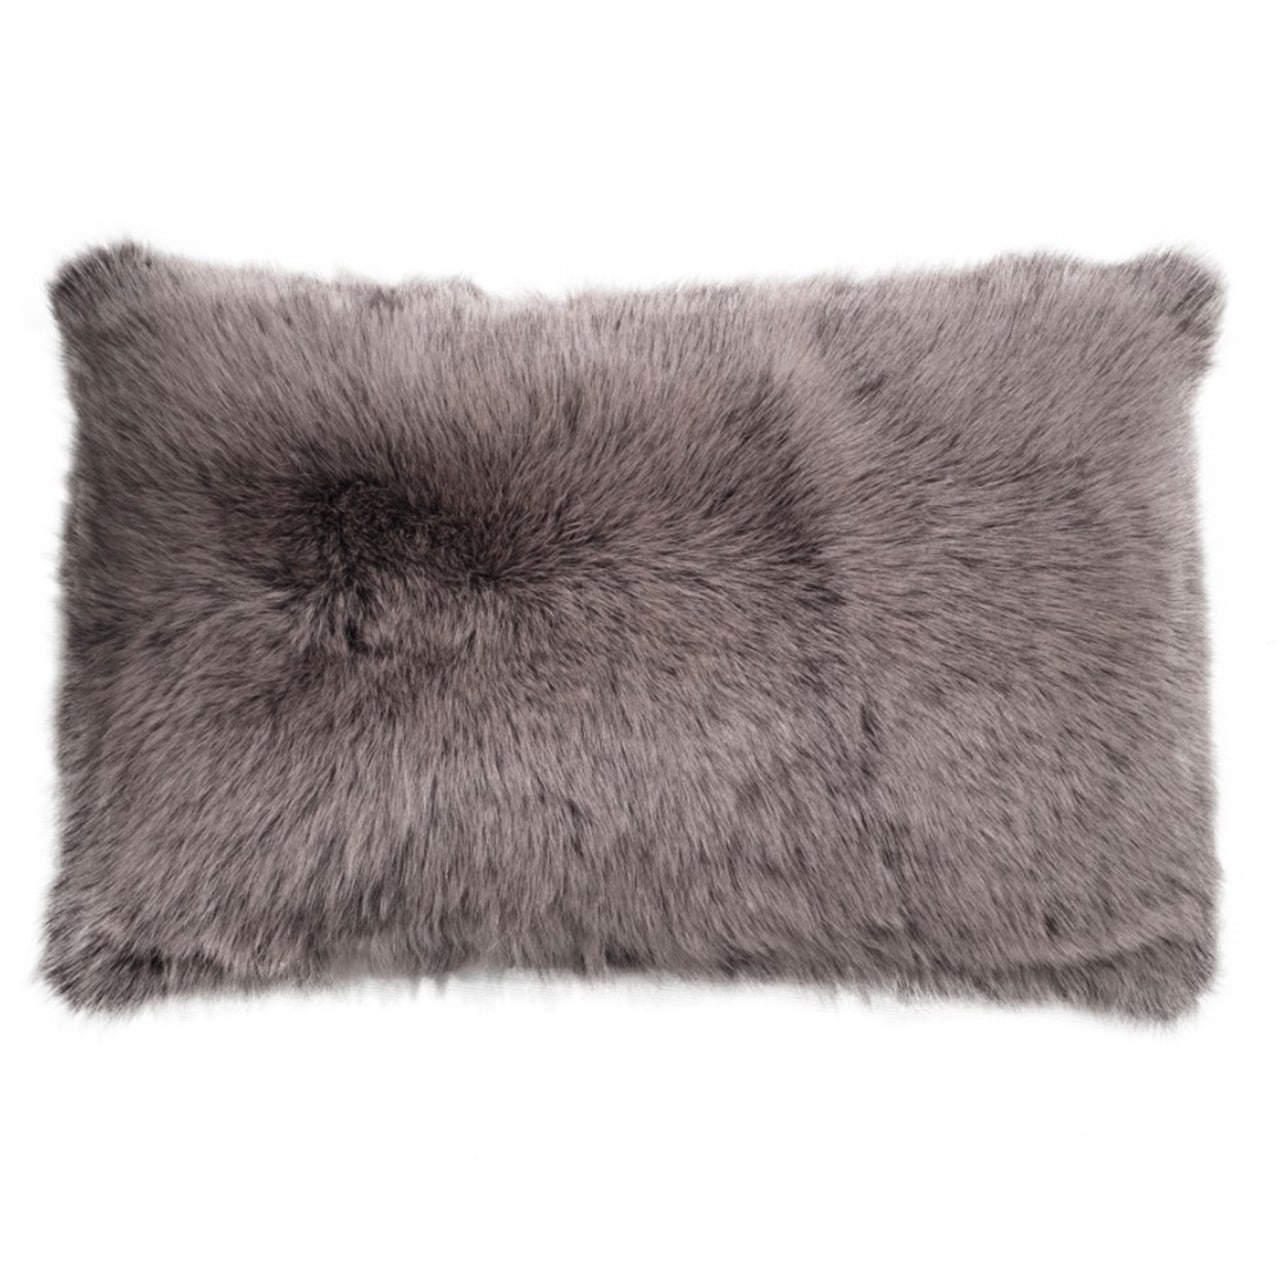 NEW-Shearling Pillow- EHB- 35X55cm (SPEHBBR3555) - ANVOGG FEEL SHEARLING | ANVOGG